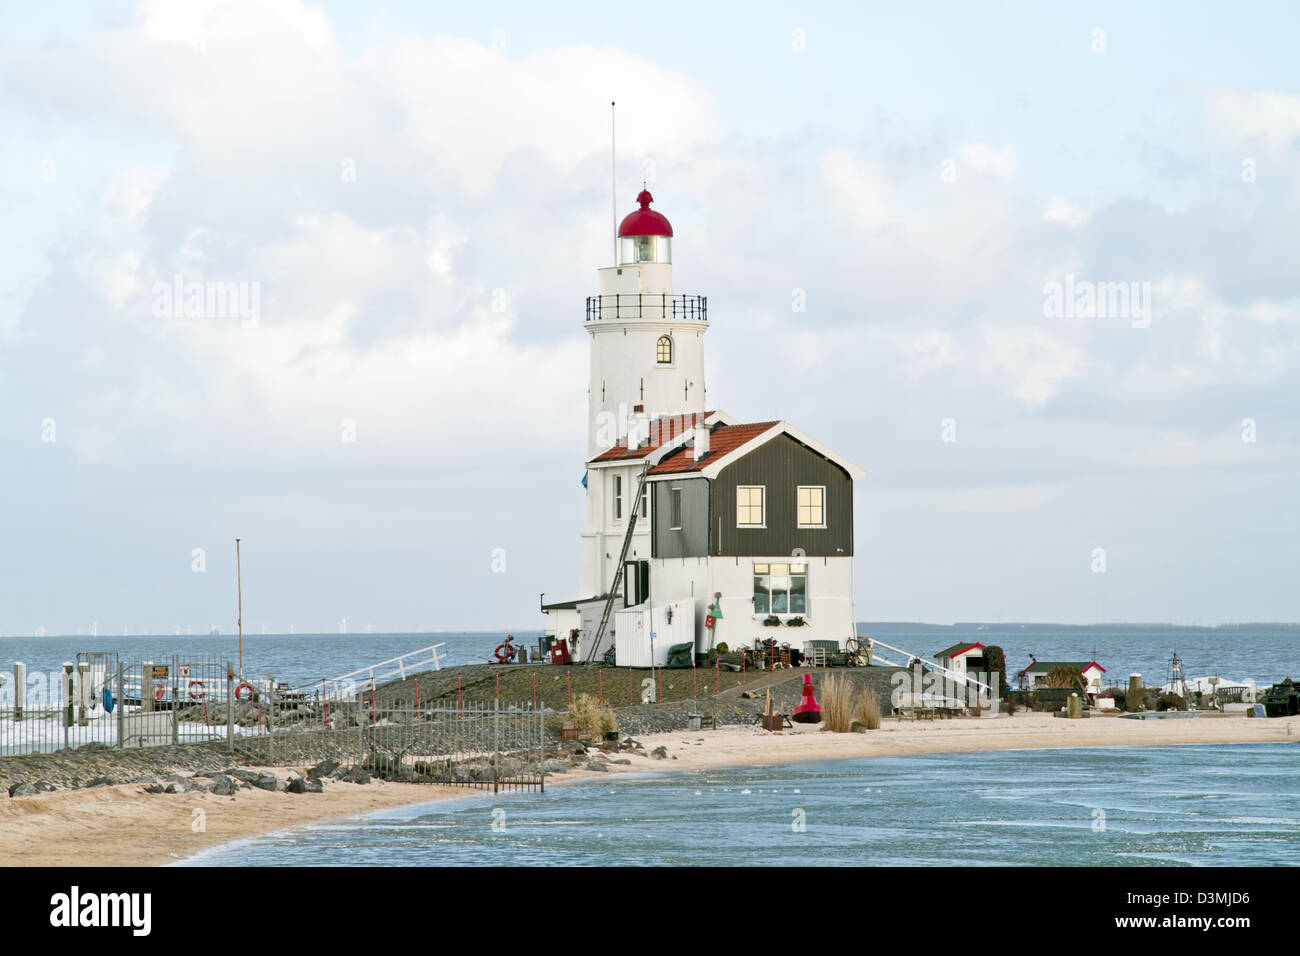 Lighthouse from Marken in the Netherlands - Stock Image